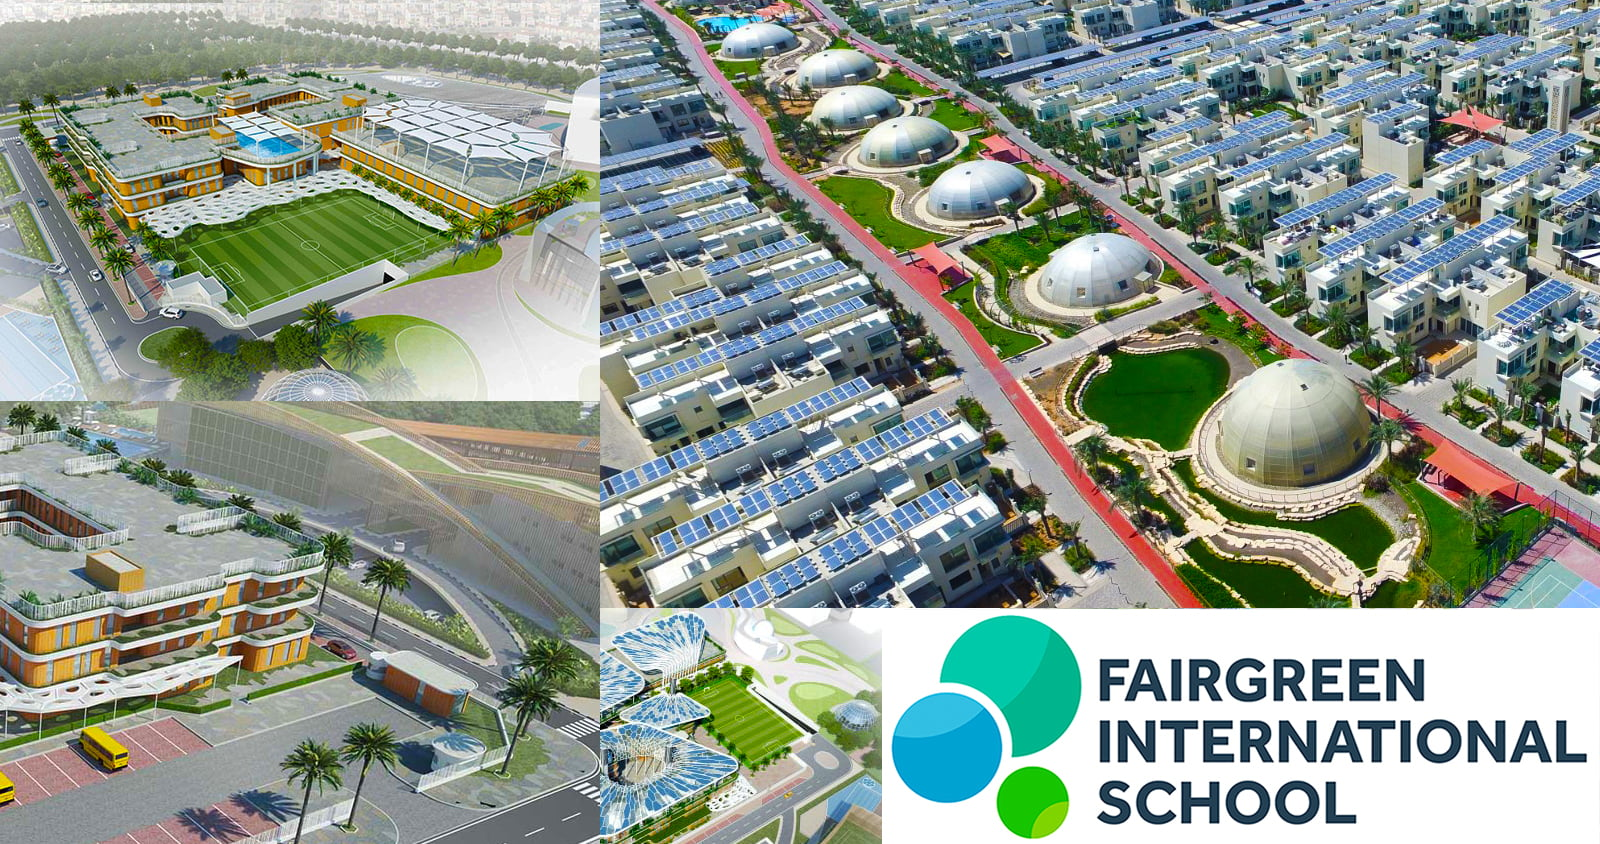 A collection of Images showing Fairgreen International School and The Sustainable City in Dubai